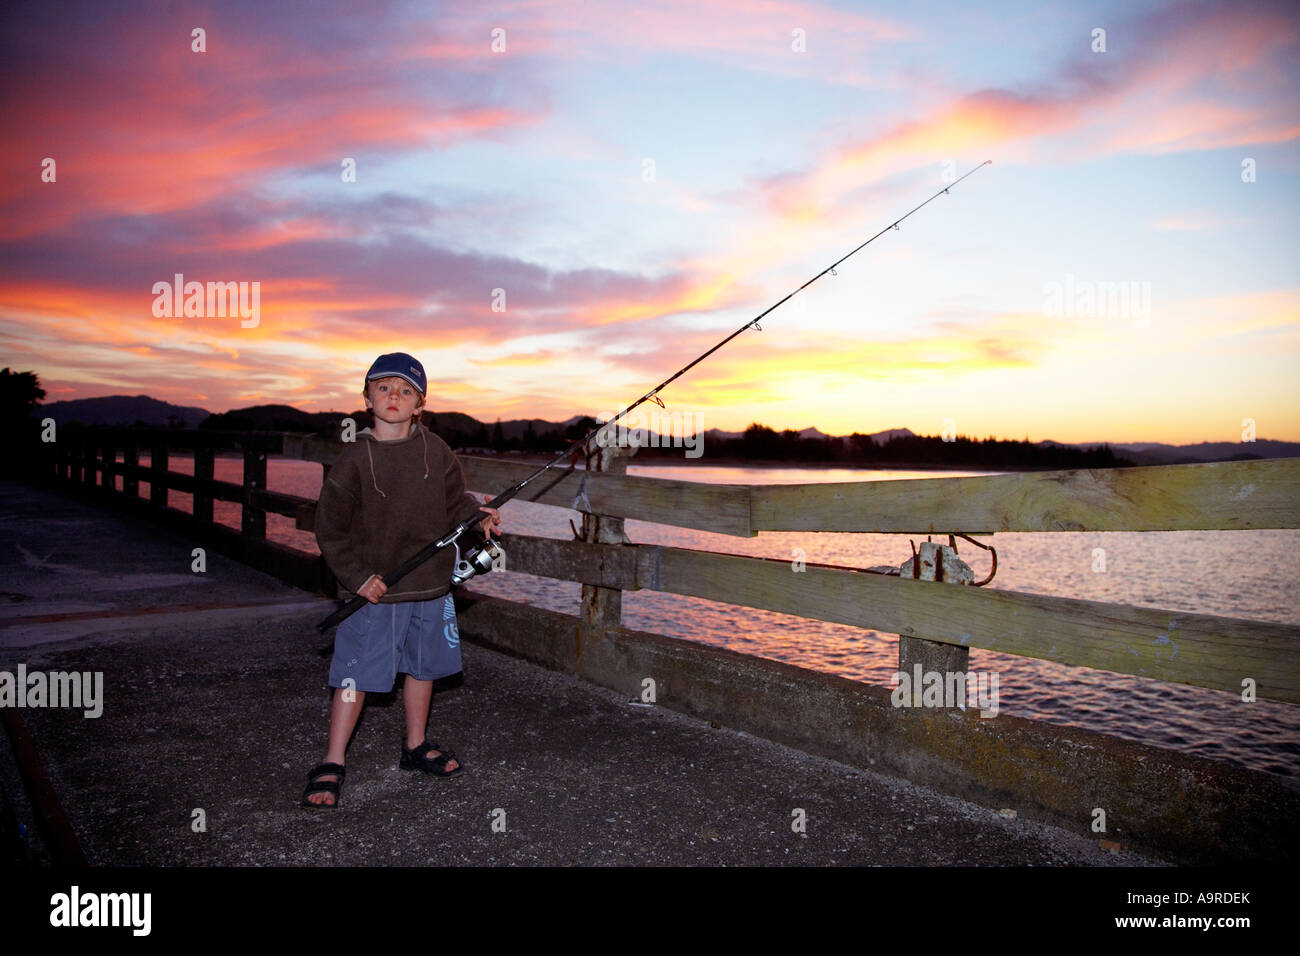 boy 6 fishing in the evening of wharf at tolaga bay with sunset behind him - Stock Image